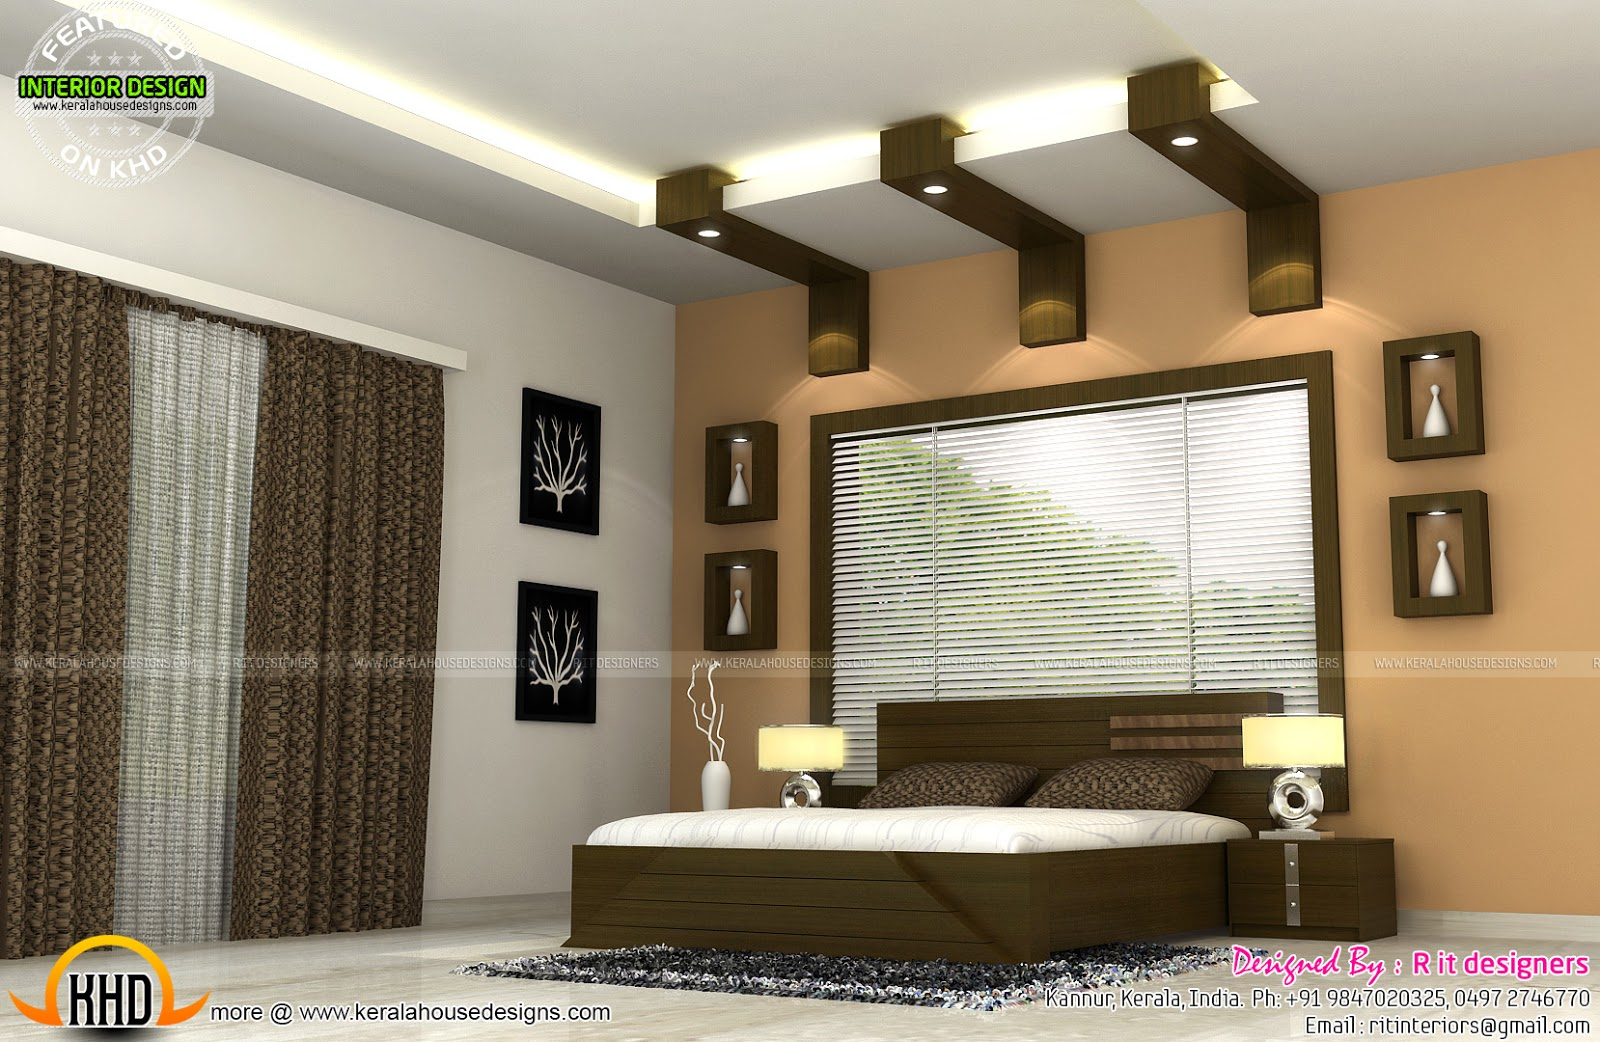 Interiors of bedrooms and kitchen kerala home design and for Interior designs for homes pictures